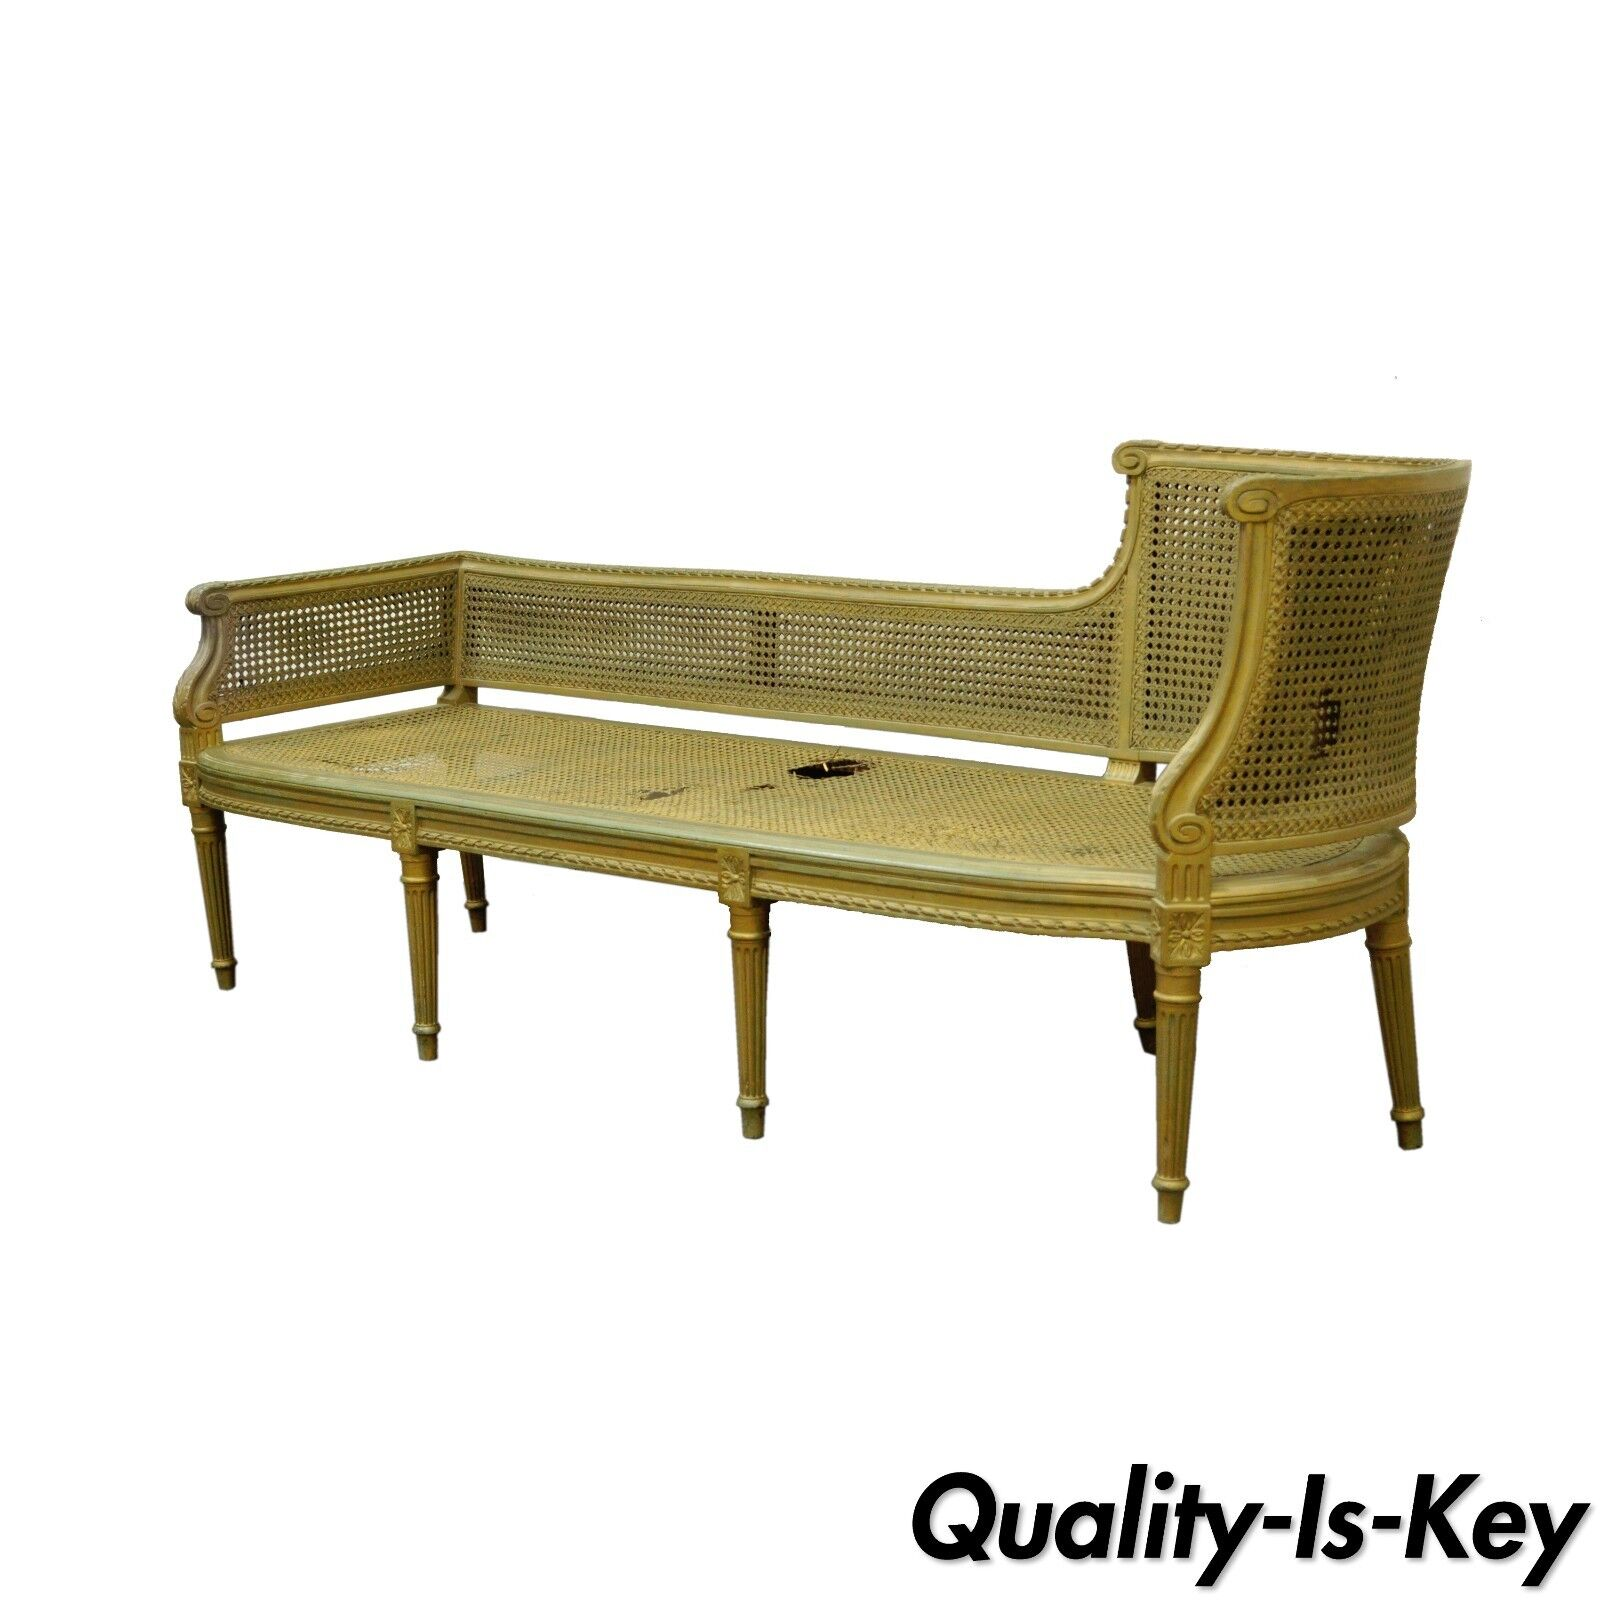 Antique French Louis Xvi Style Caned